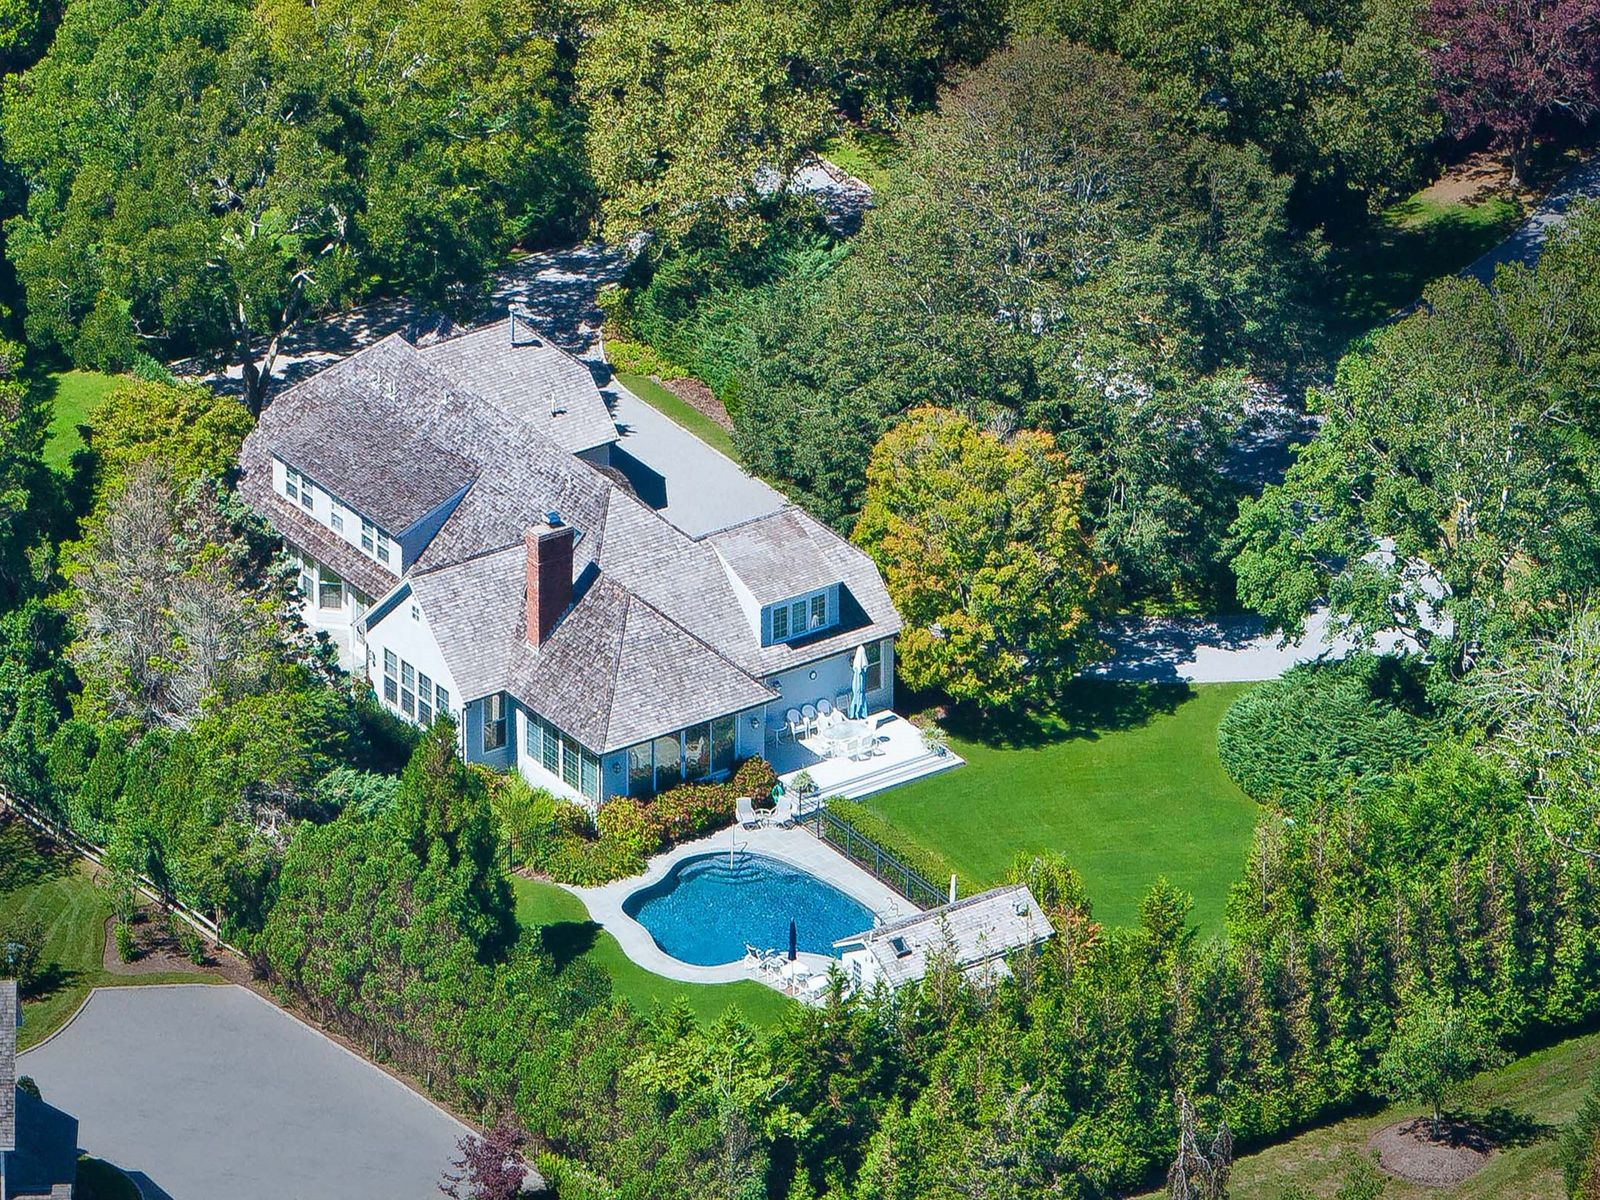 Charming Country Home, East Hampton NY Single Family Home - Hamptons Real Estate